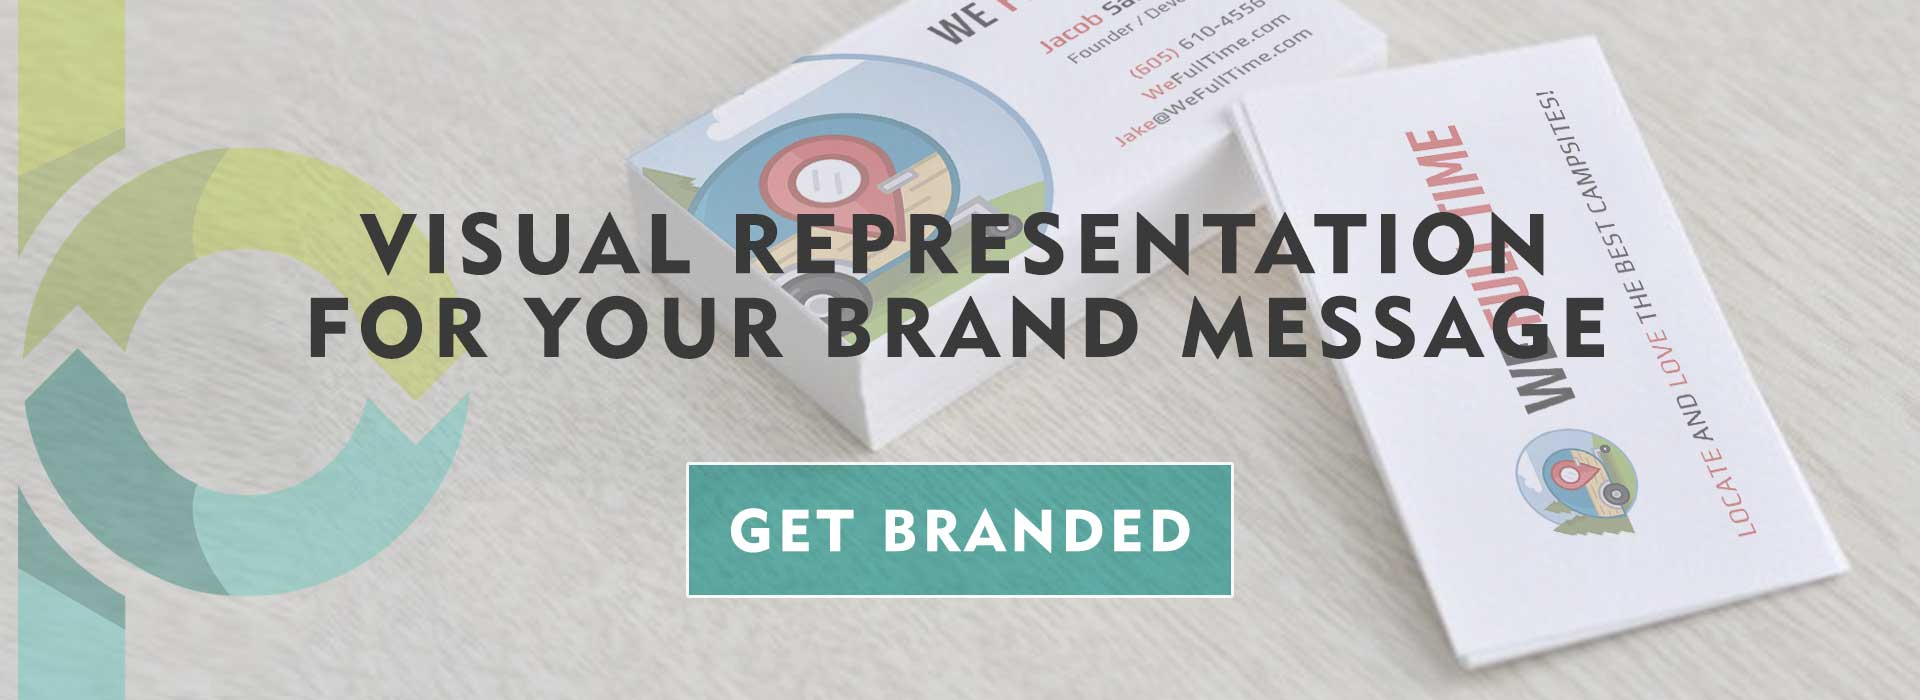 Visual Representation for Your Brand Message